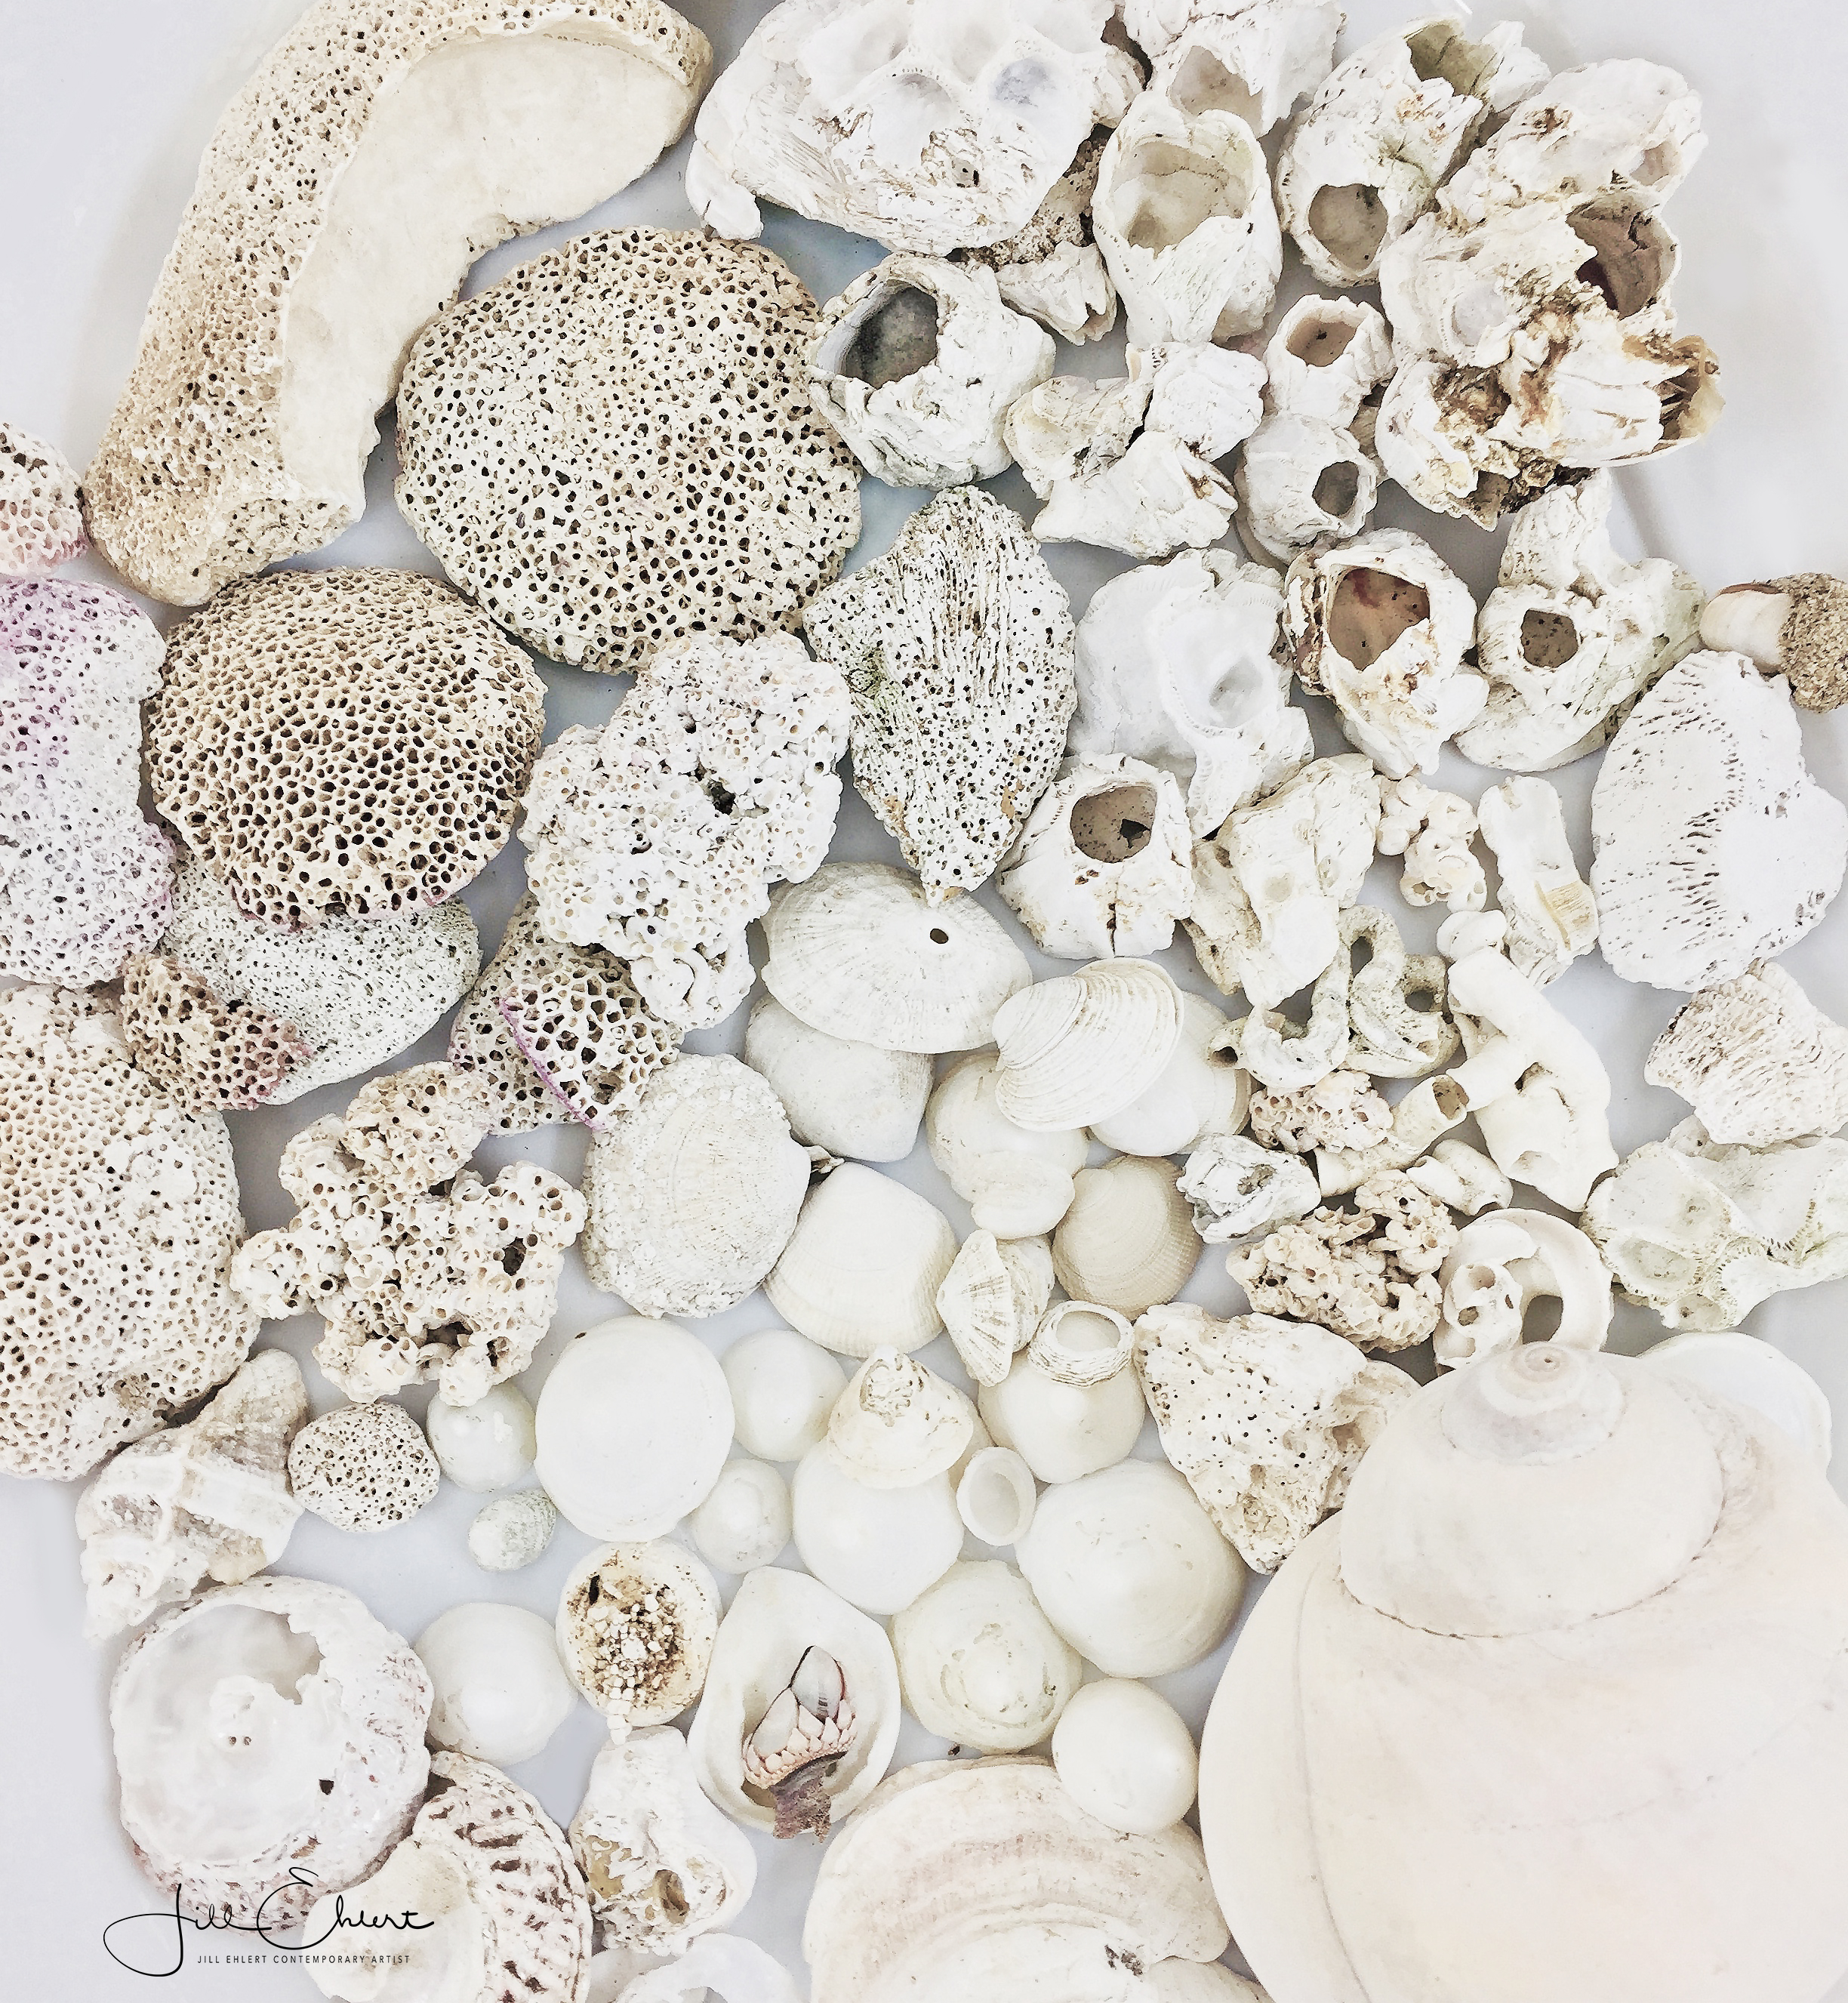 Shell collection_4.jpg